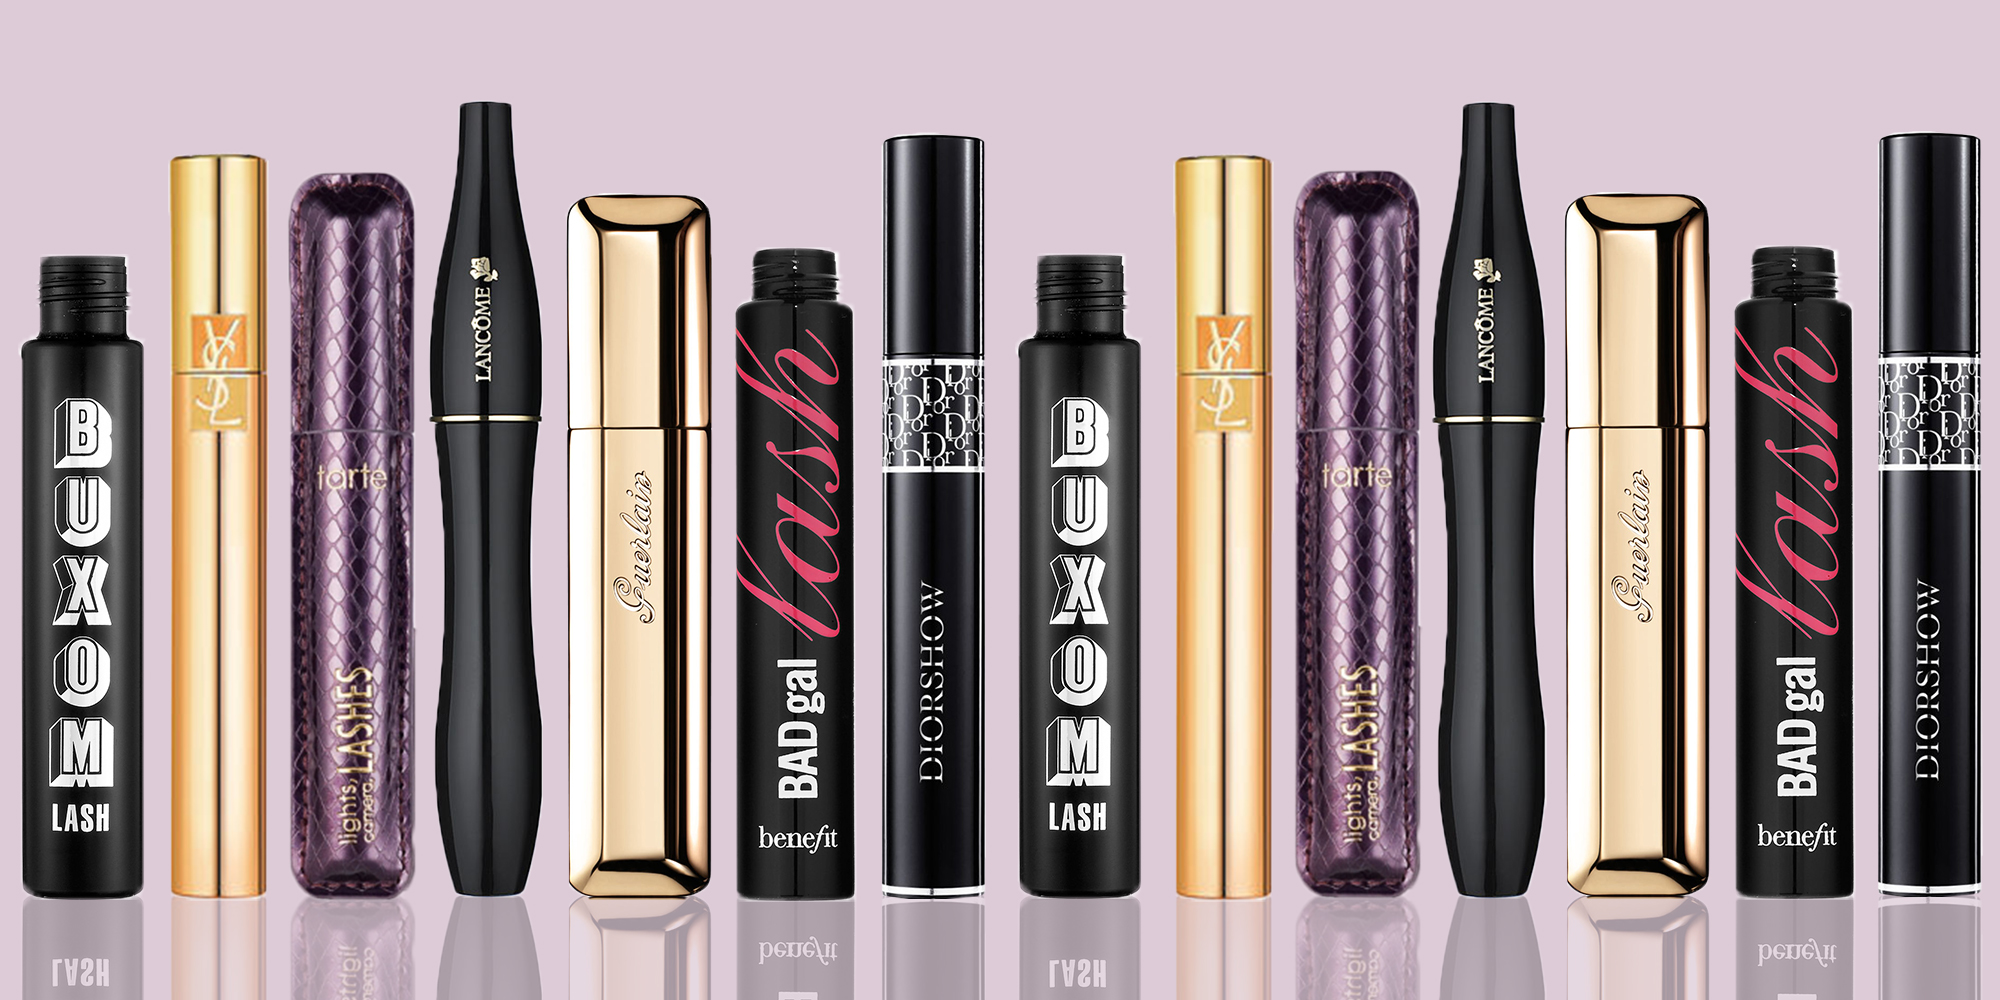 15 best mascara reviews in 2017 best selling iconic mascaras of all time